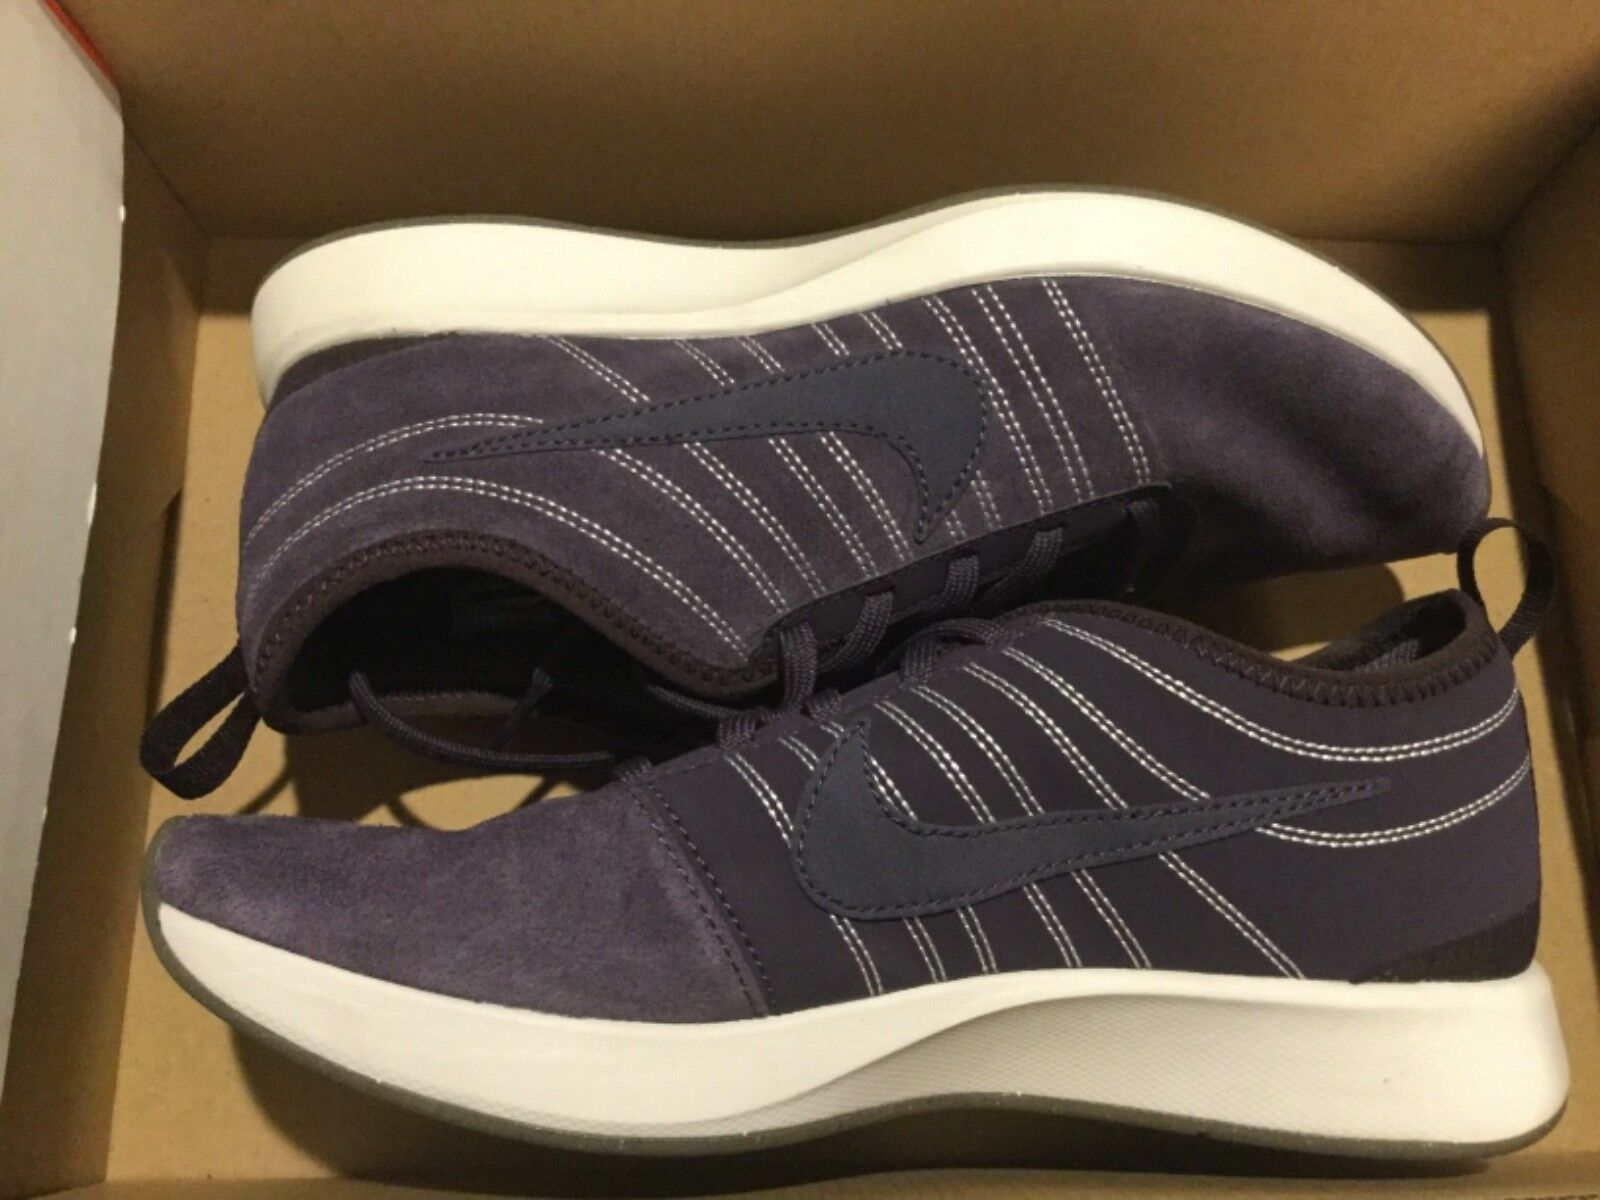 New Shoes Nike Womens Dualtone Racer SE Run Running Shoes New 940418-500 Sz 7 purple 223114